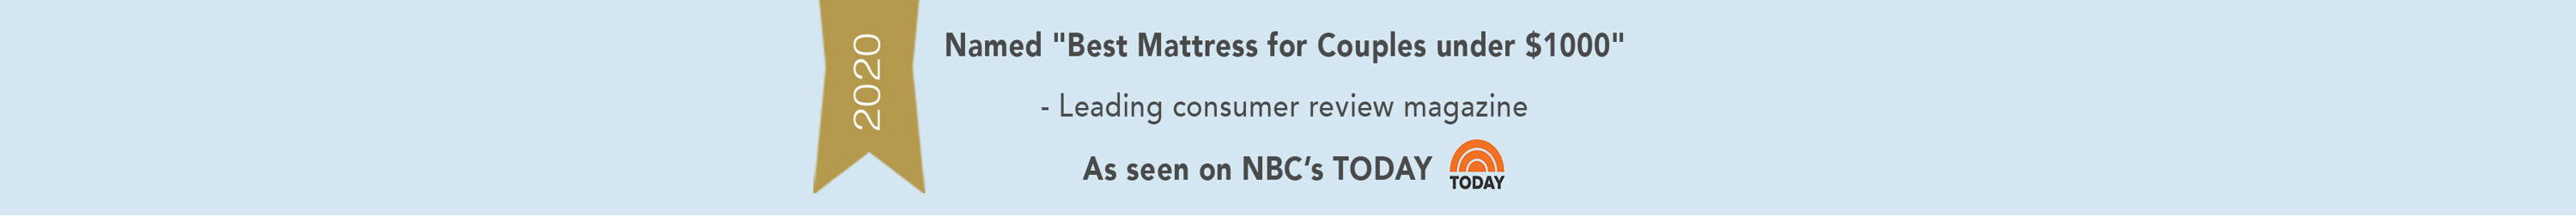 Today Show video link for Real Bed mattress named as best mattress for couples